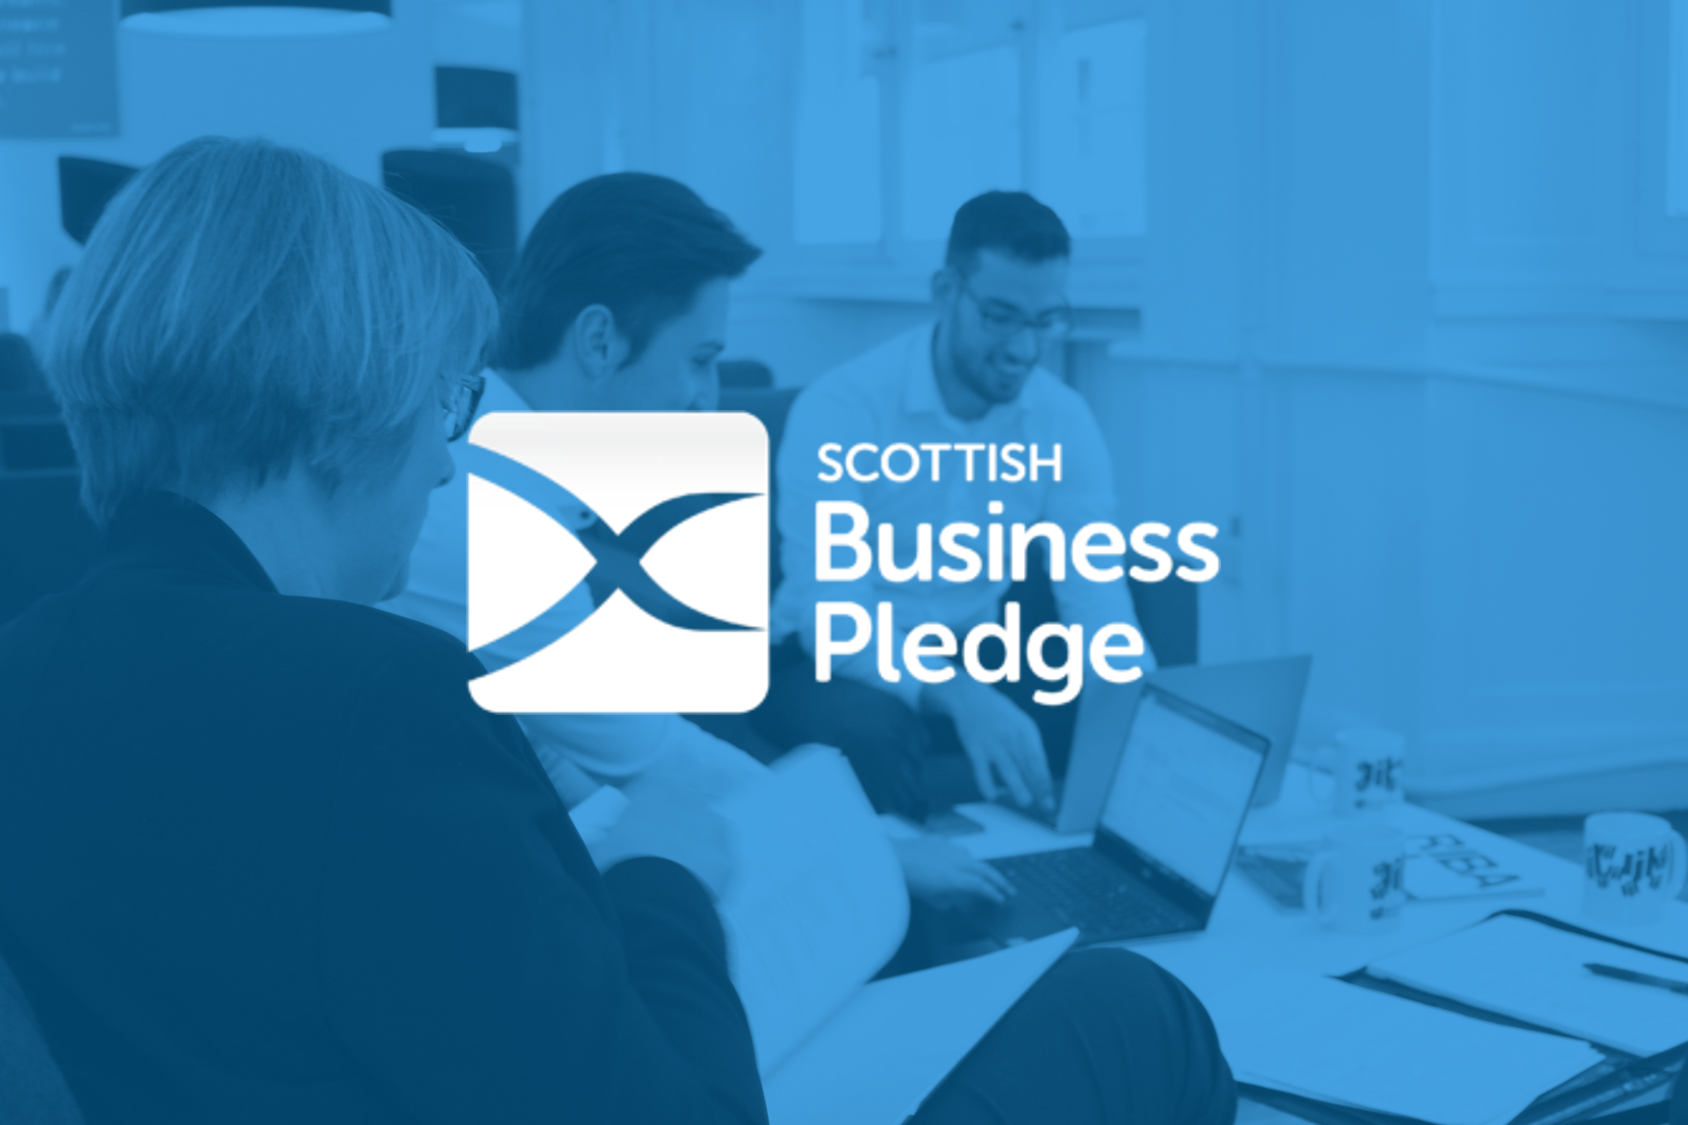 We've signed up to the Scottish Business Pledge